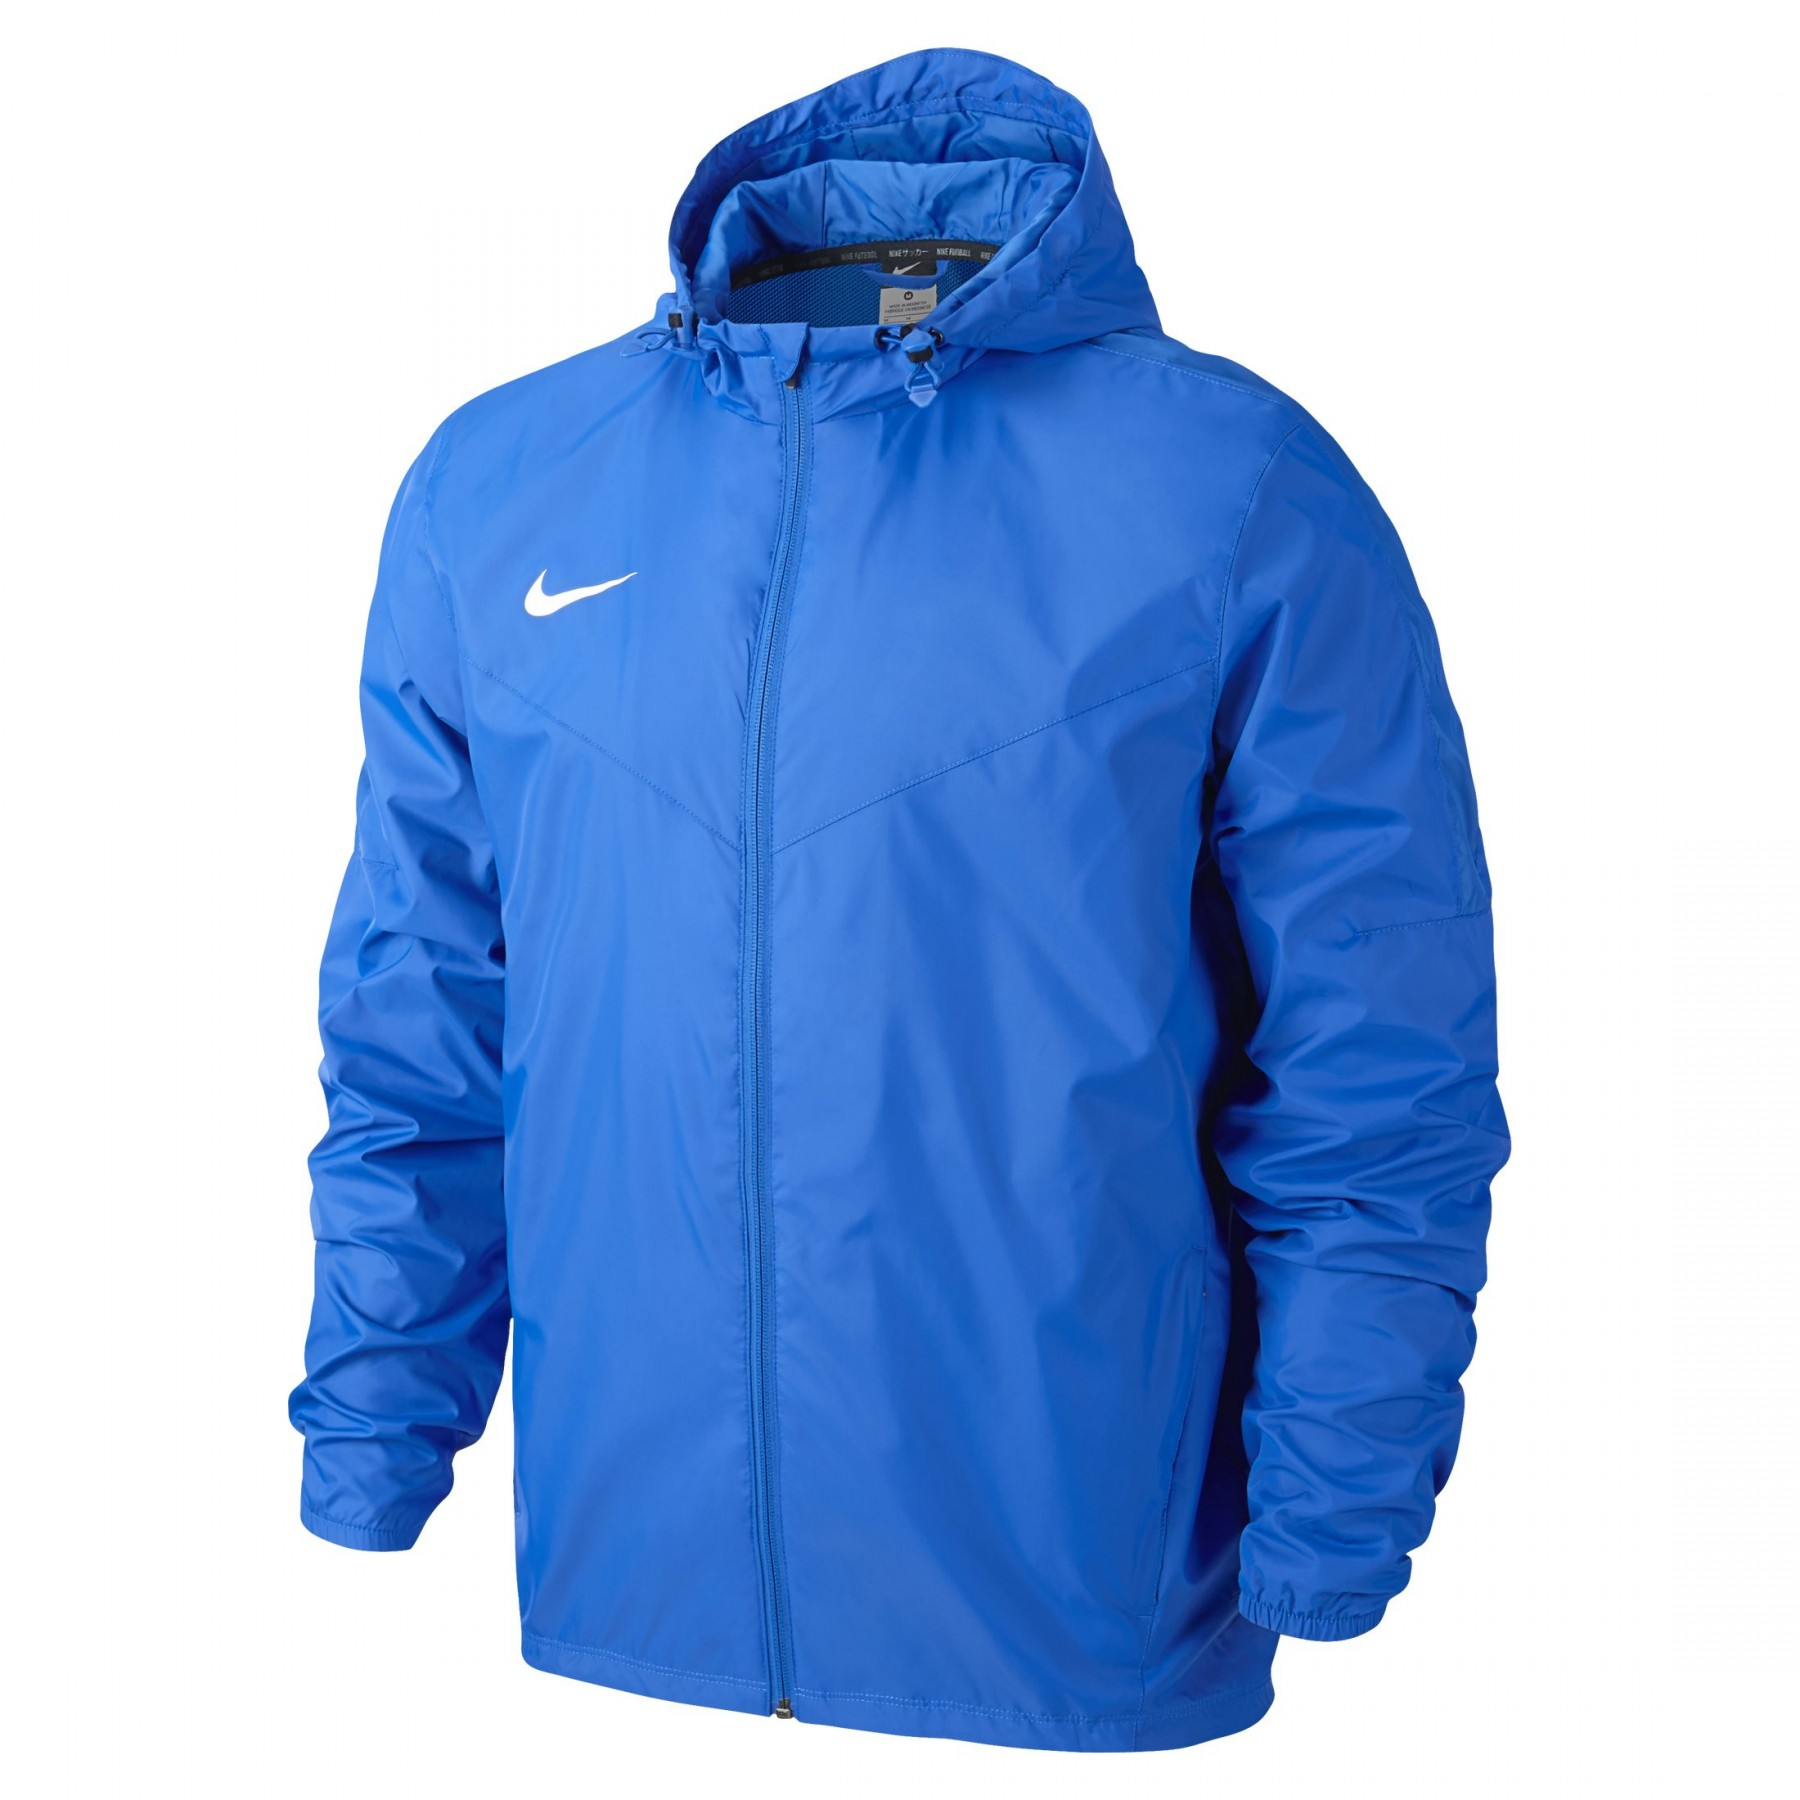 NIKE TEAM SIDELINE RAIN JACKET 645480-463